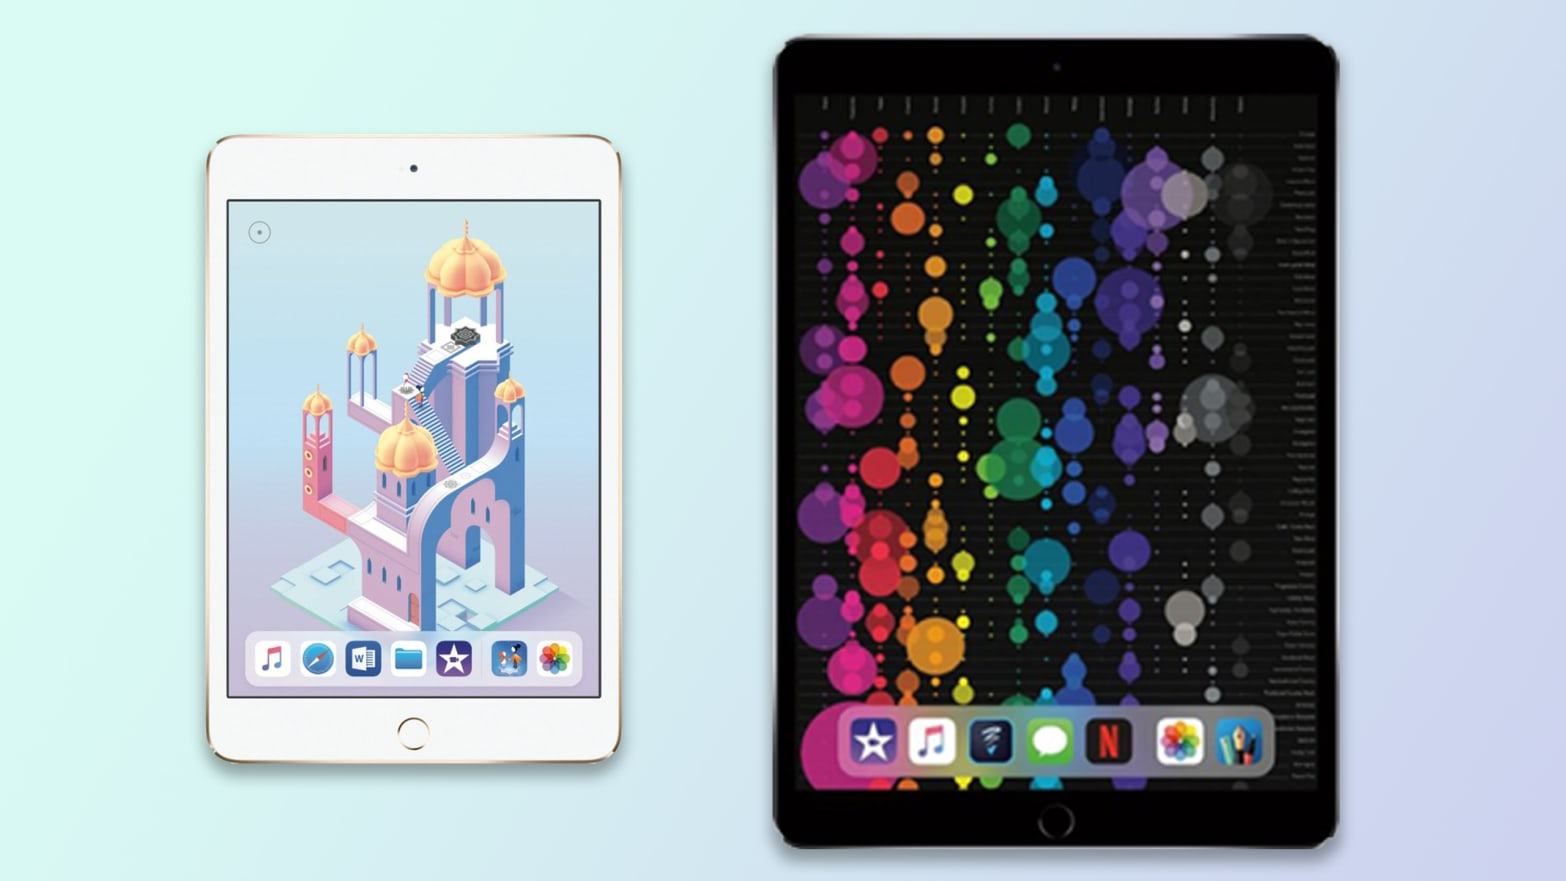 iPad Air Release Put iPad Pro and iPad Mini On Sale at Best Buy